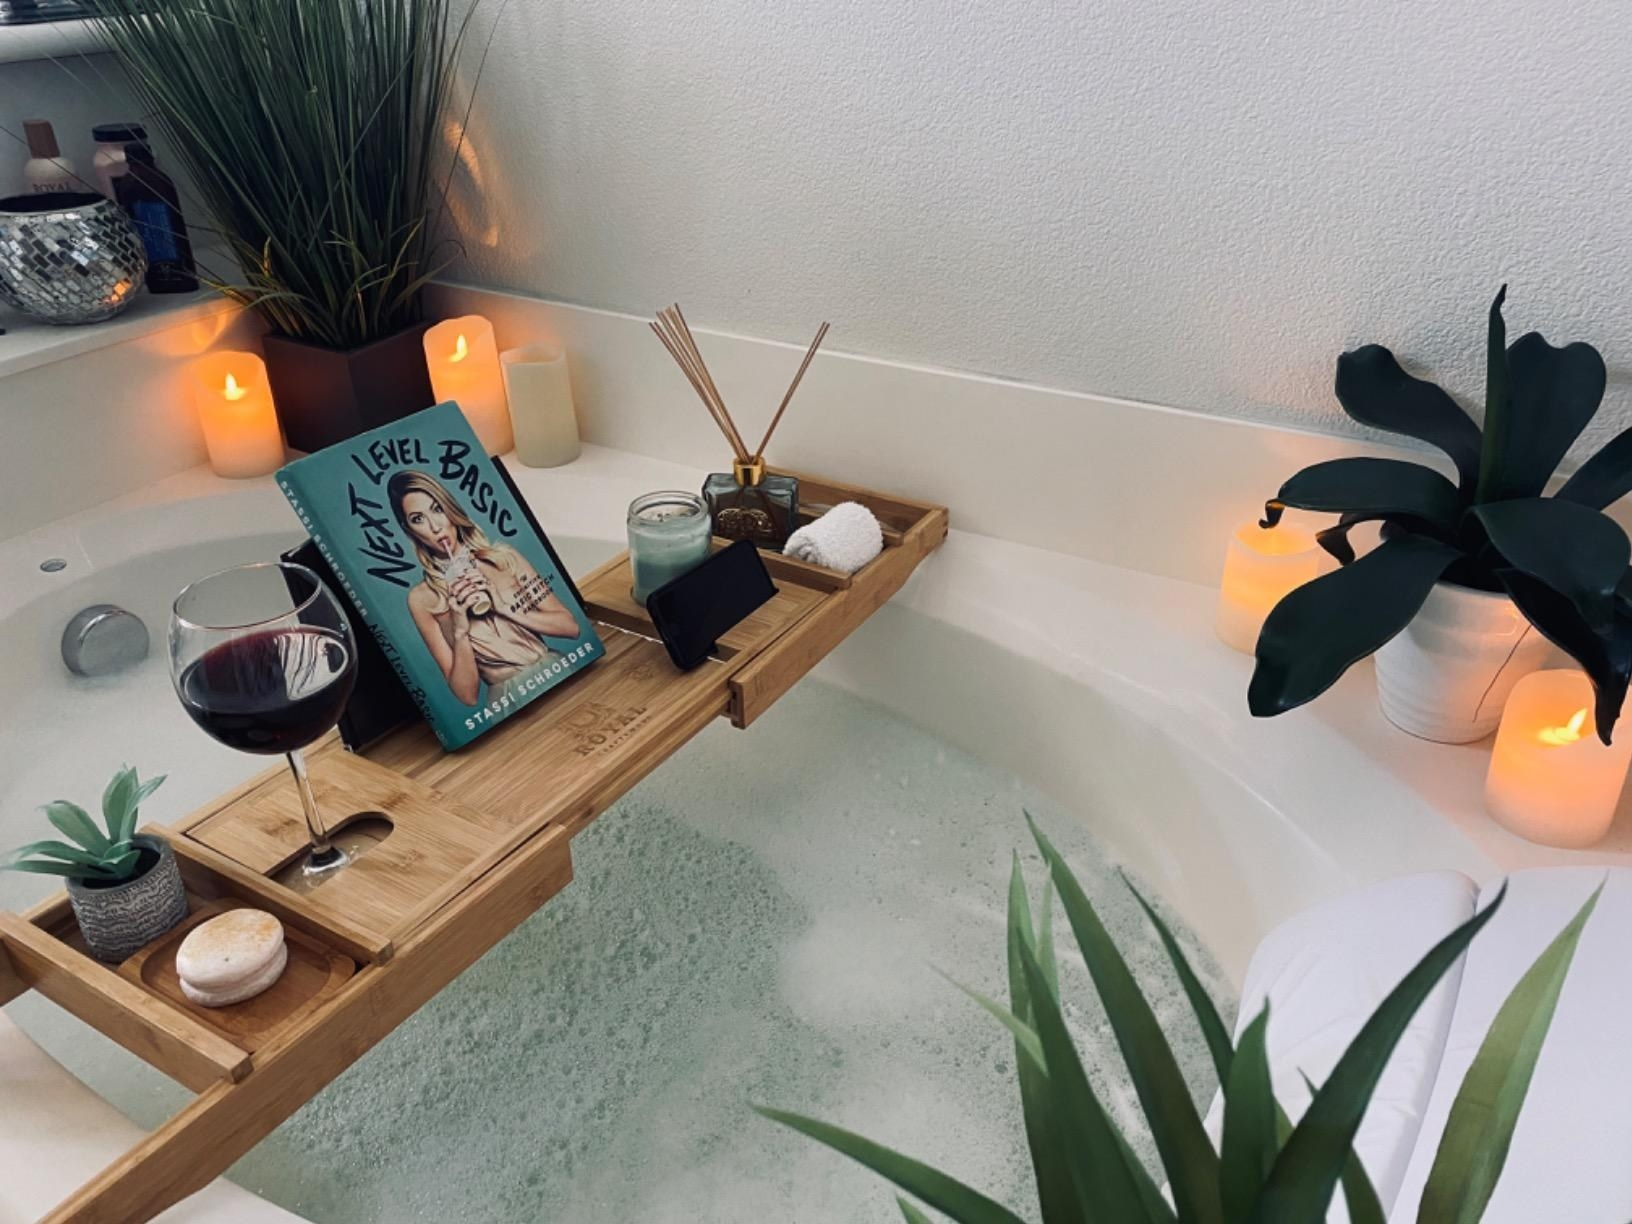 The tray placed on tub with relaxing items on top